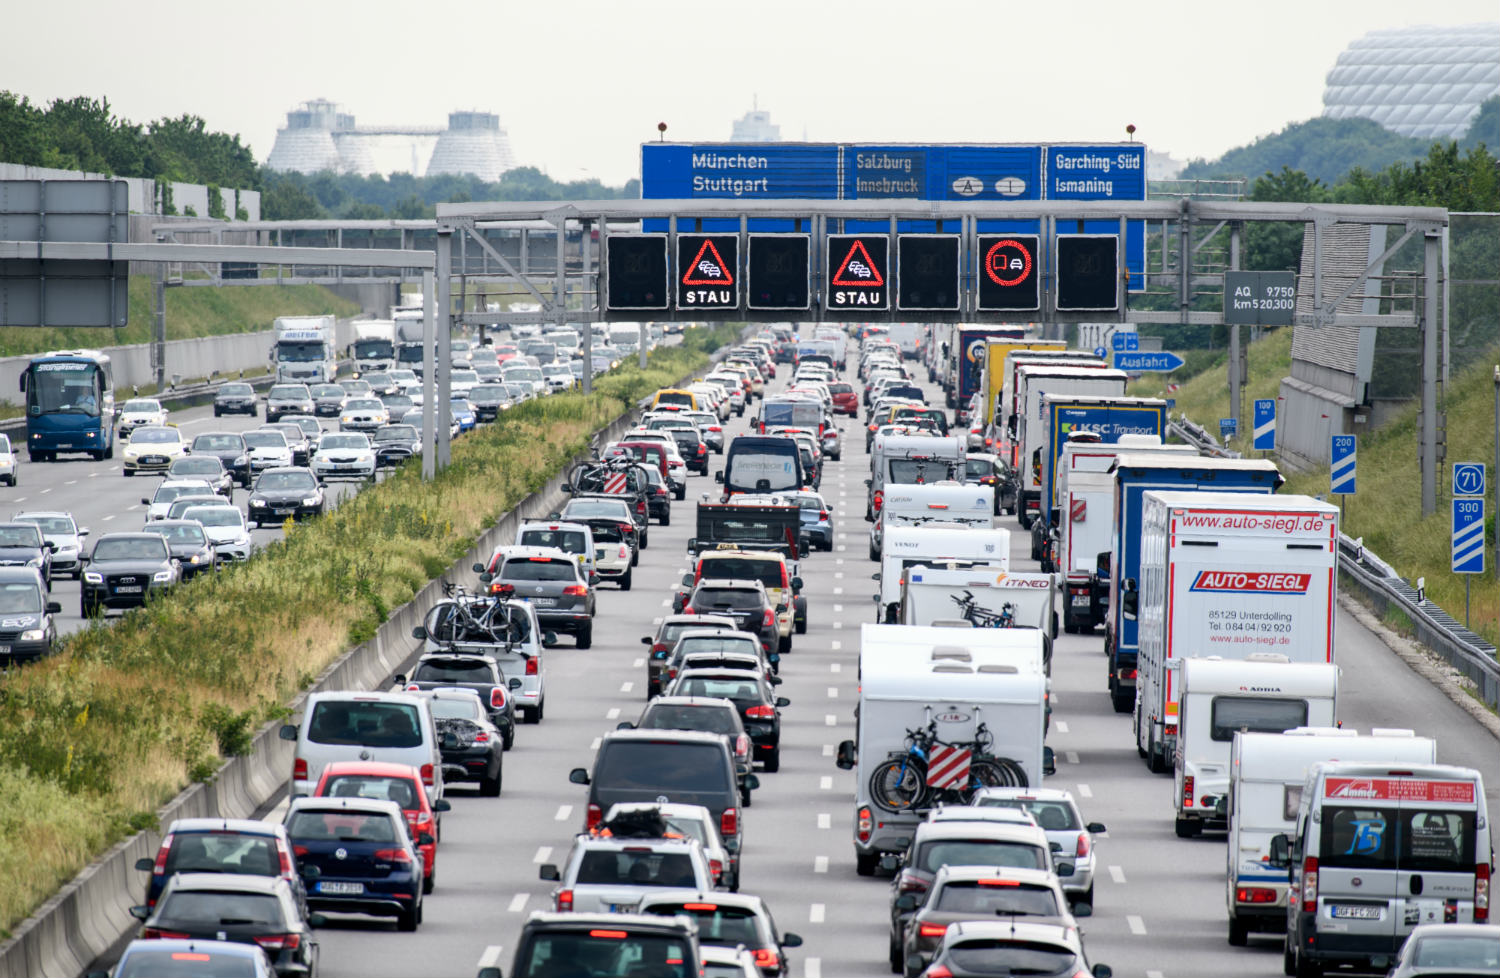 Cars stuck in traffic on Germany's autobahn